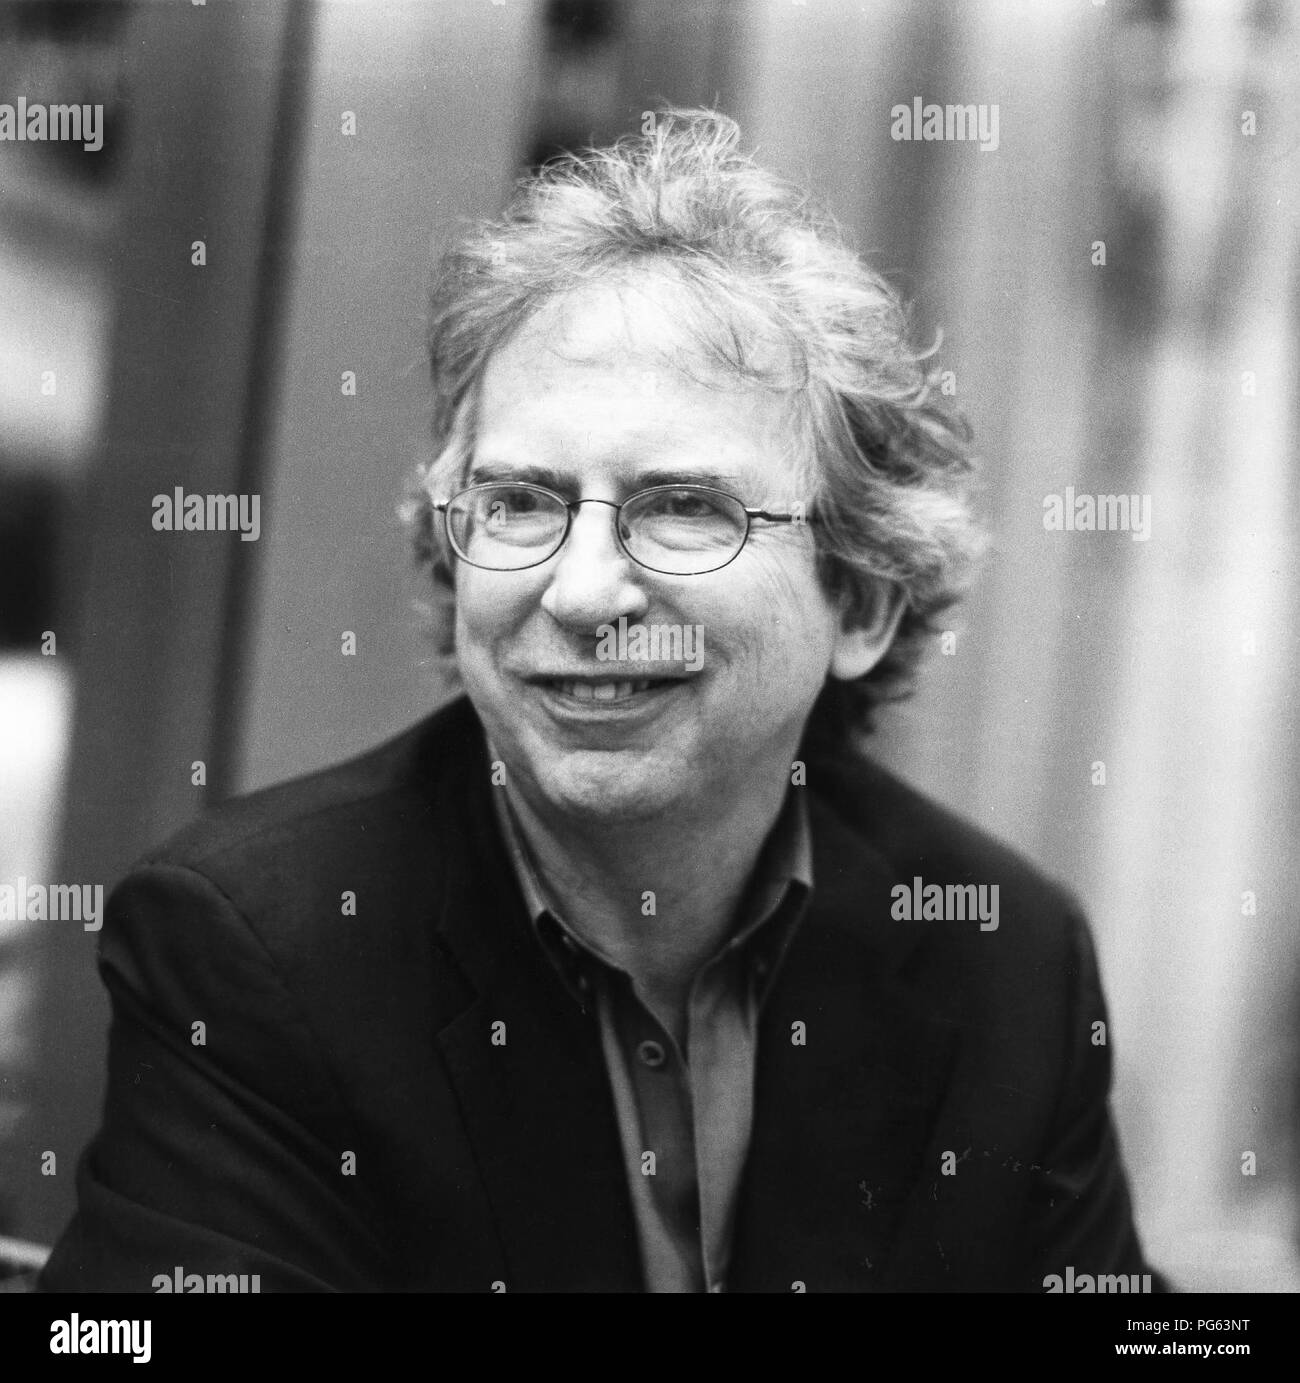 Peter Carey, Australian writer. - Stock Image